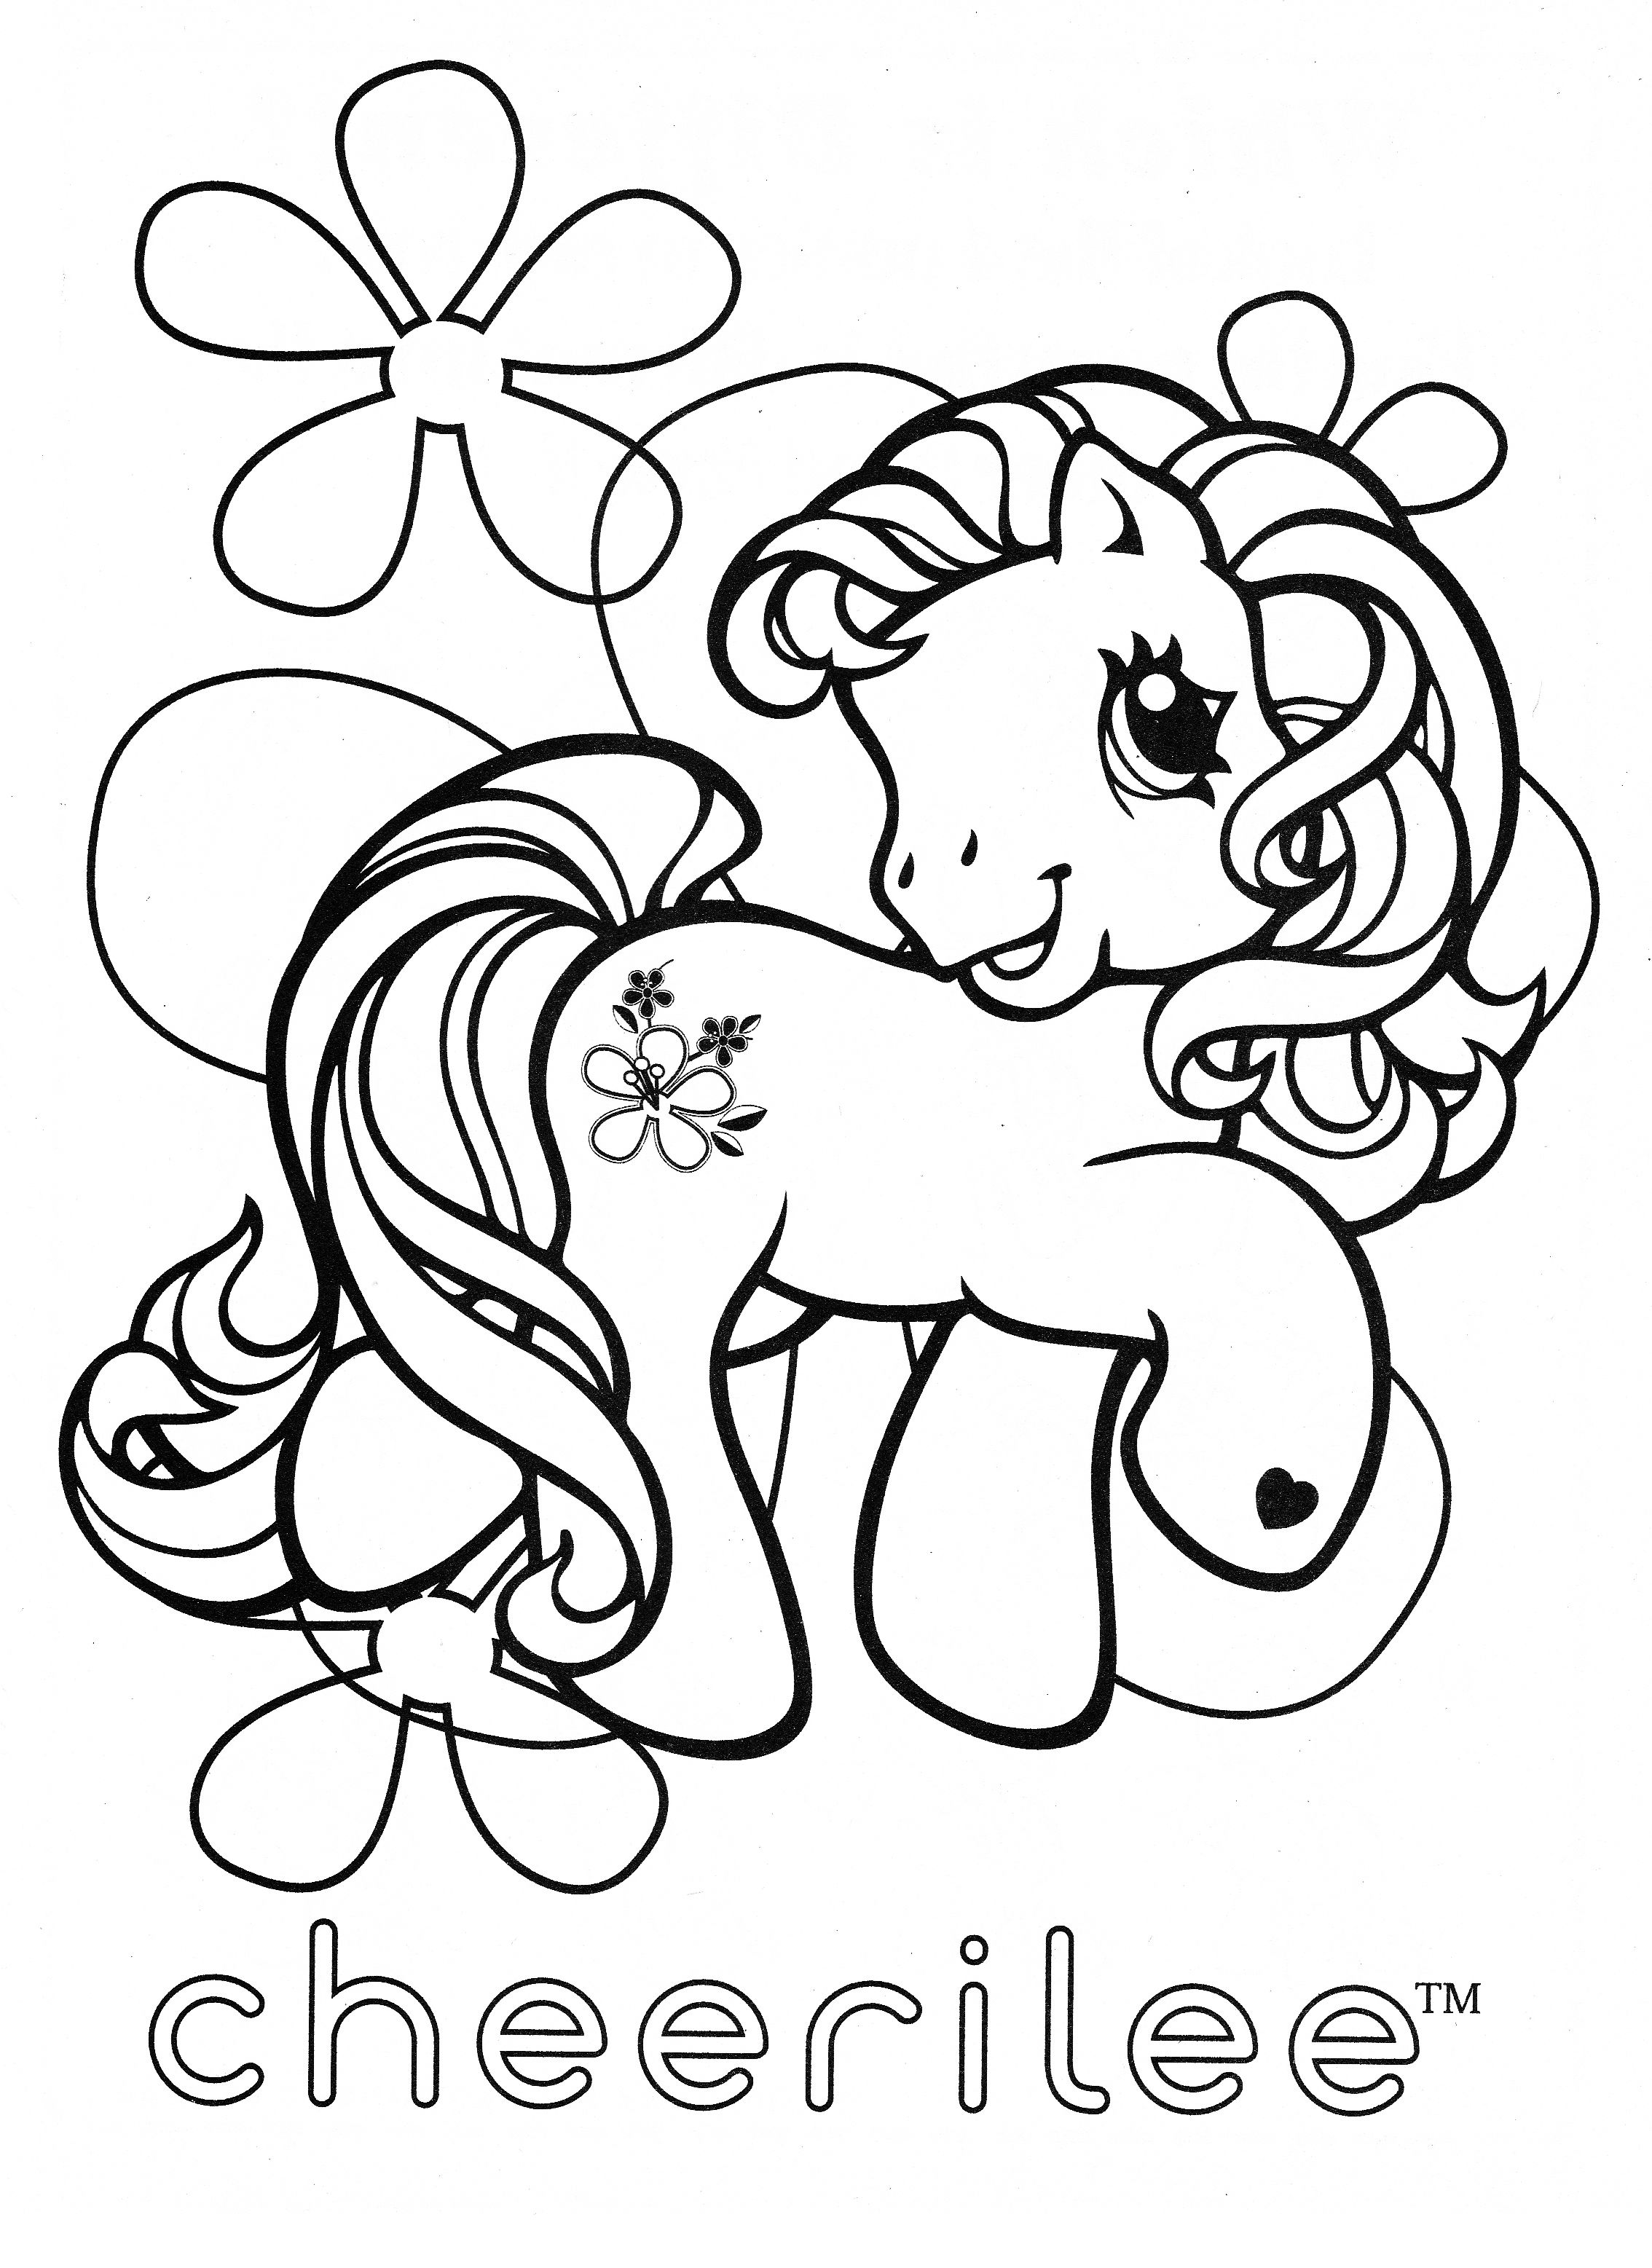 My Little Pony Valentine Coloring Pages : My little pony coloring page mlp cheerilee